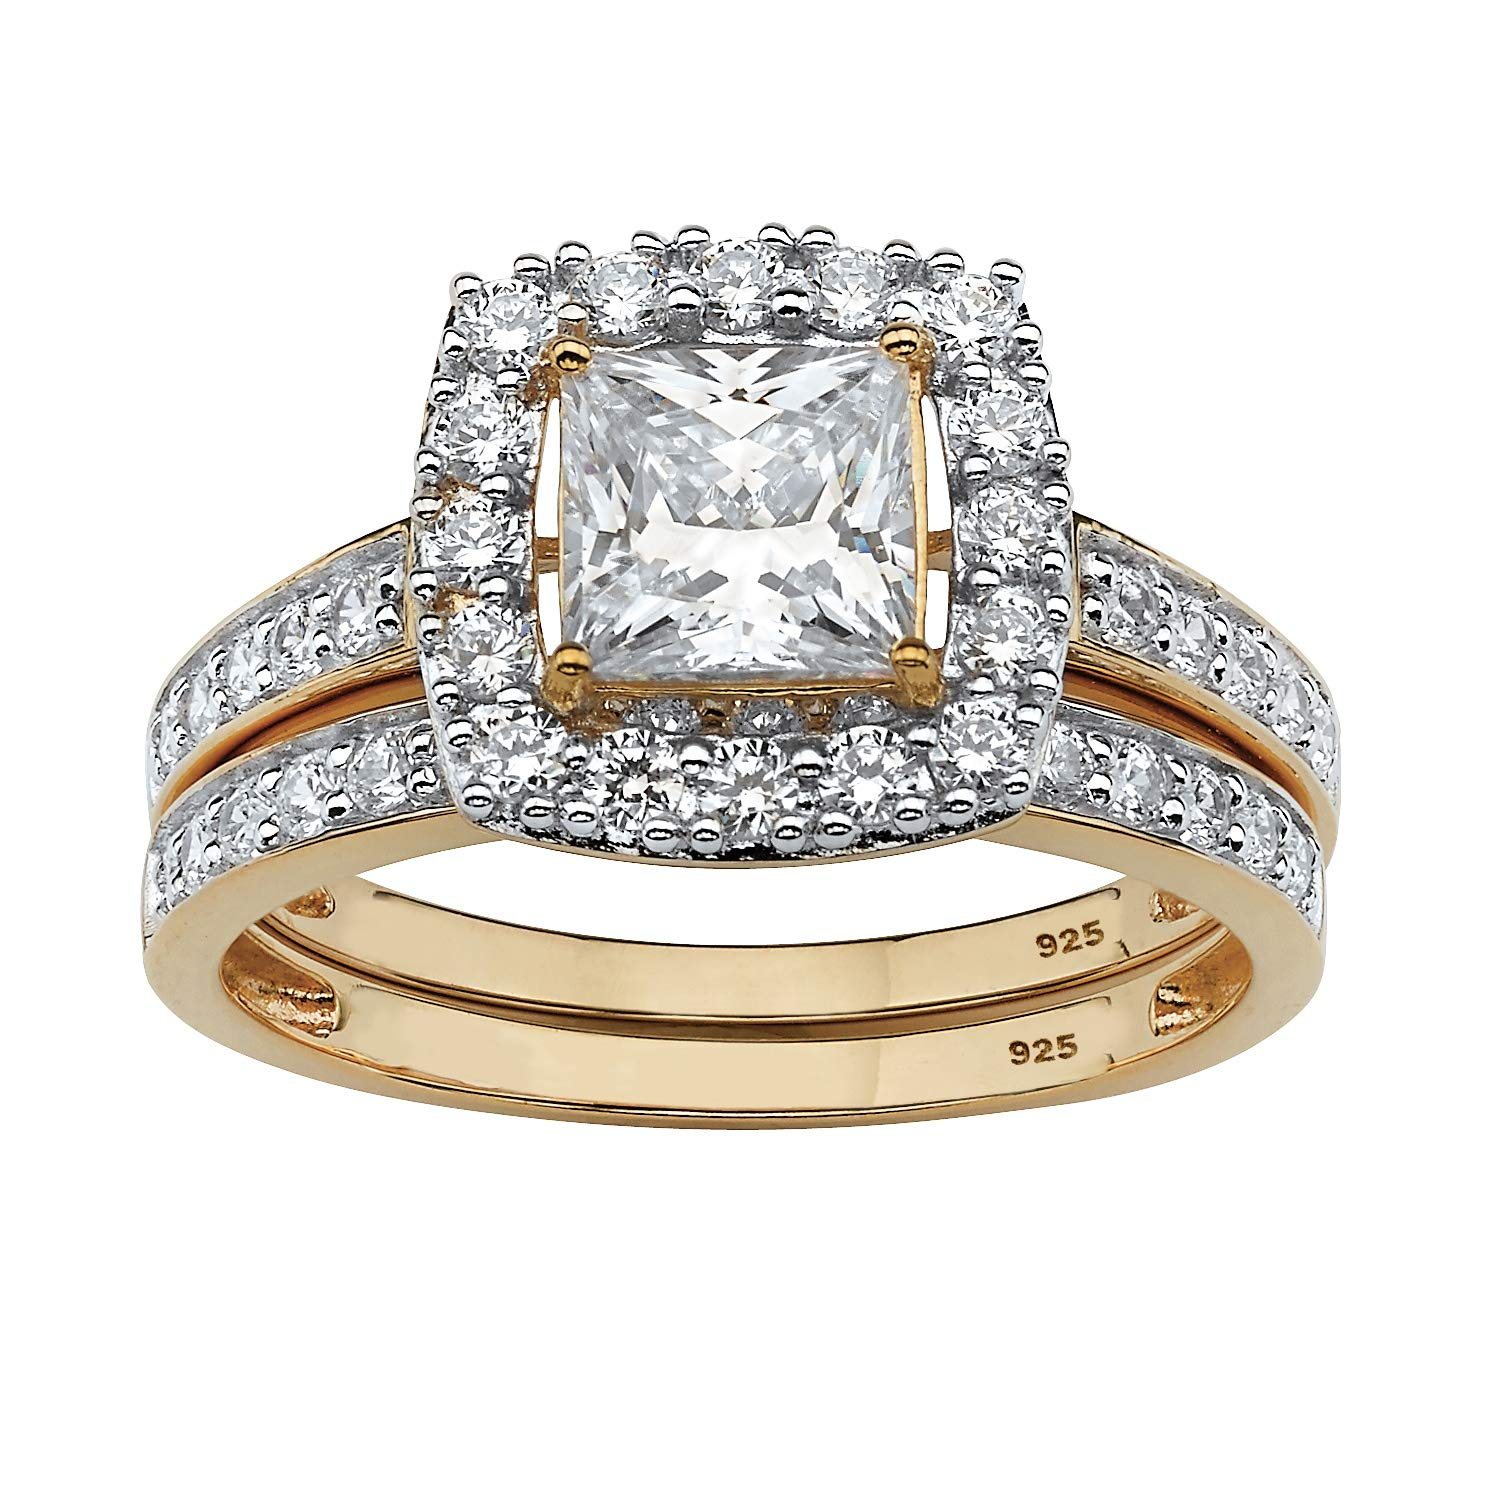 18K Yellow Gold over Sterling Silver Princess Cut Cubic Zirconia Halo Bridal Ring Set Size 8 by Palm Beach Jewelry